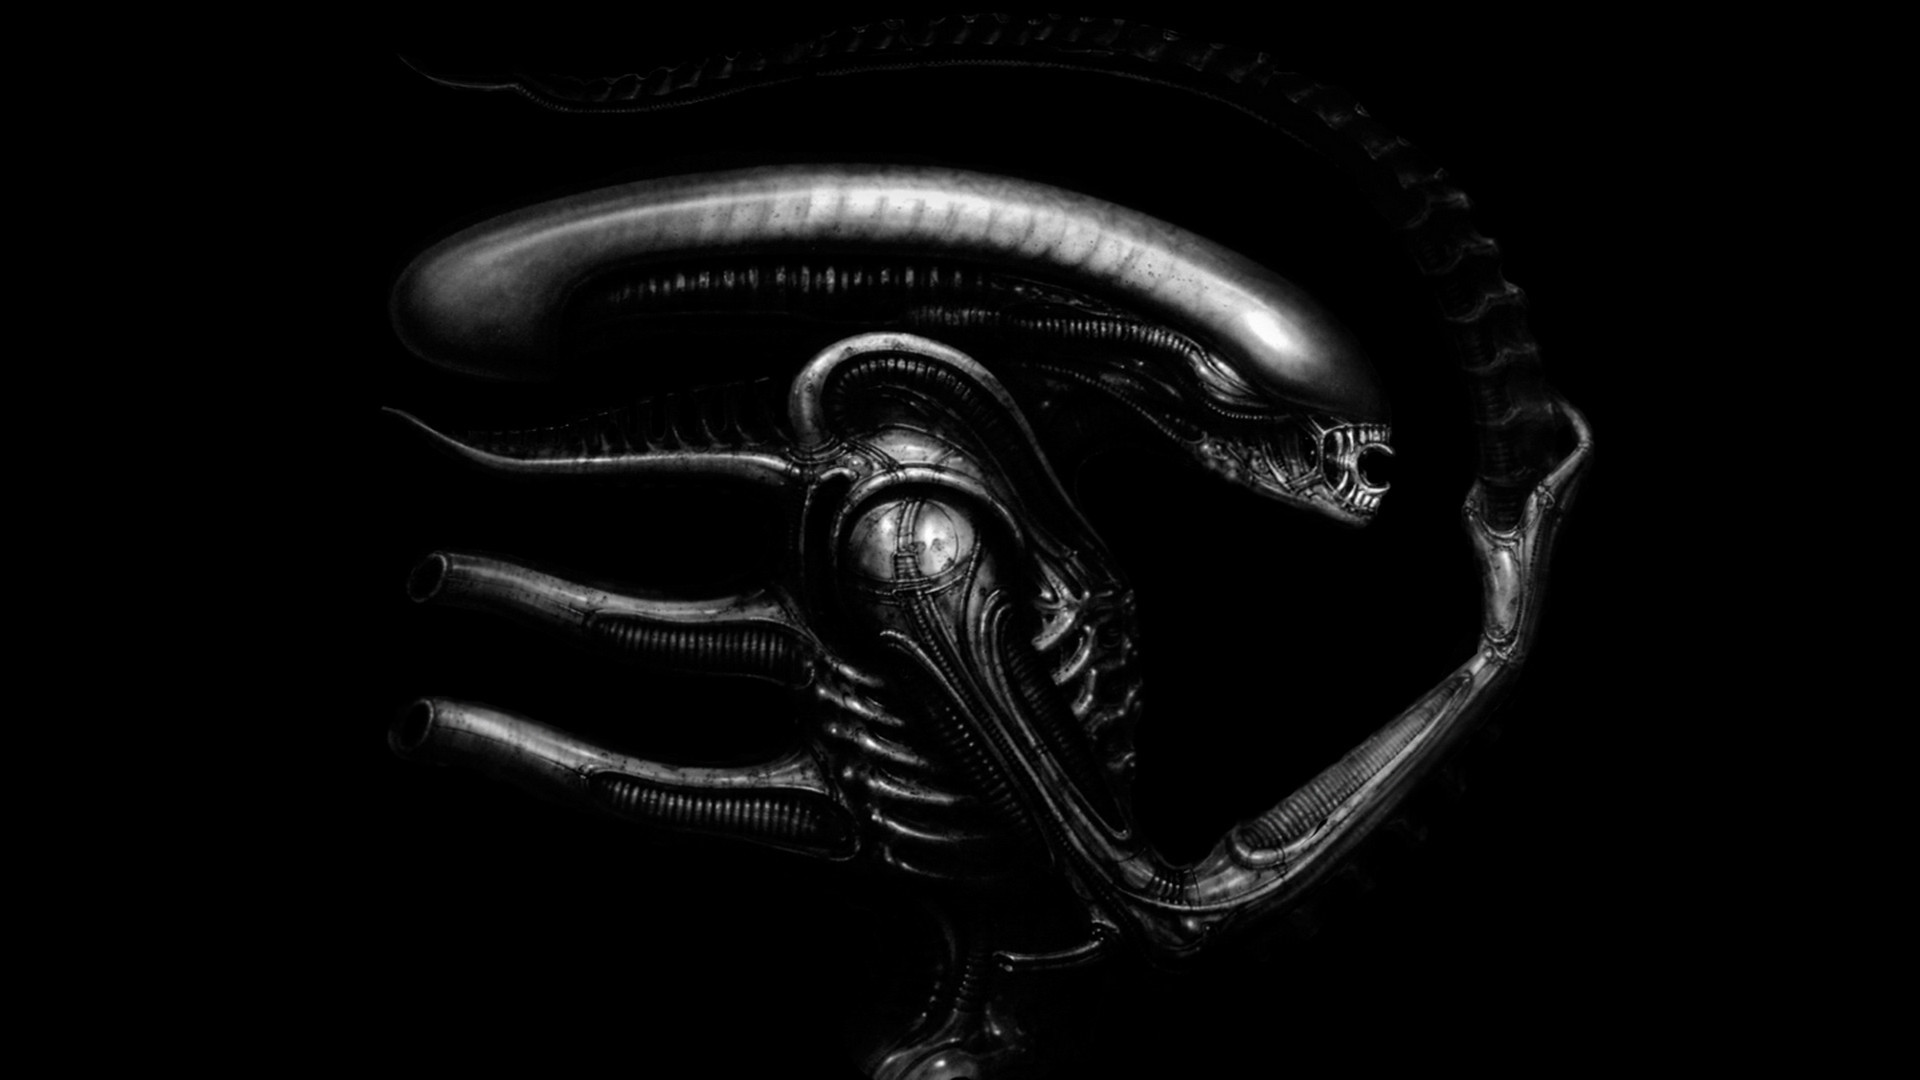 Alien (1979) concept art by H.R. Giger